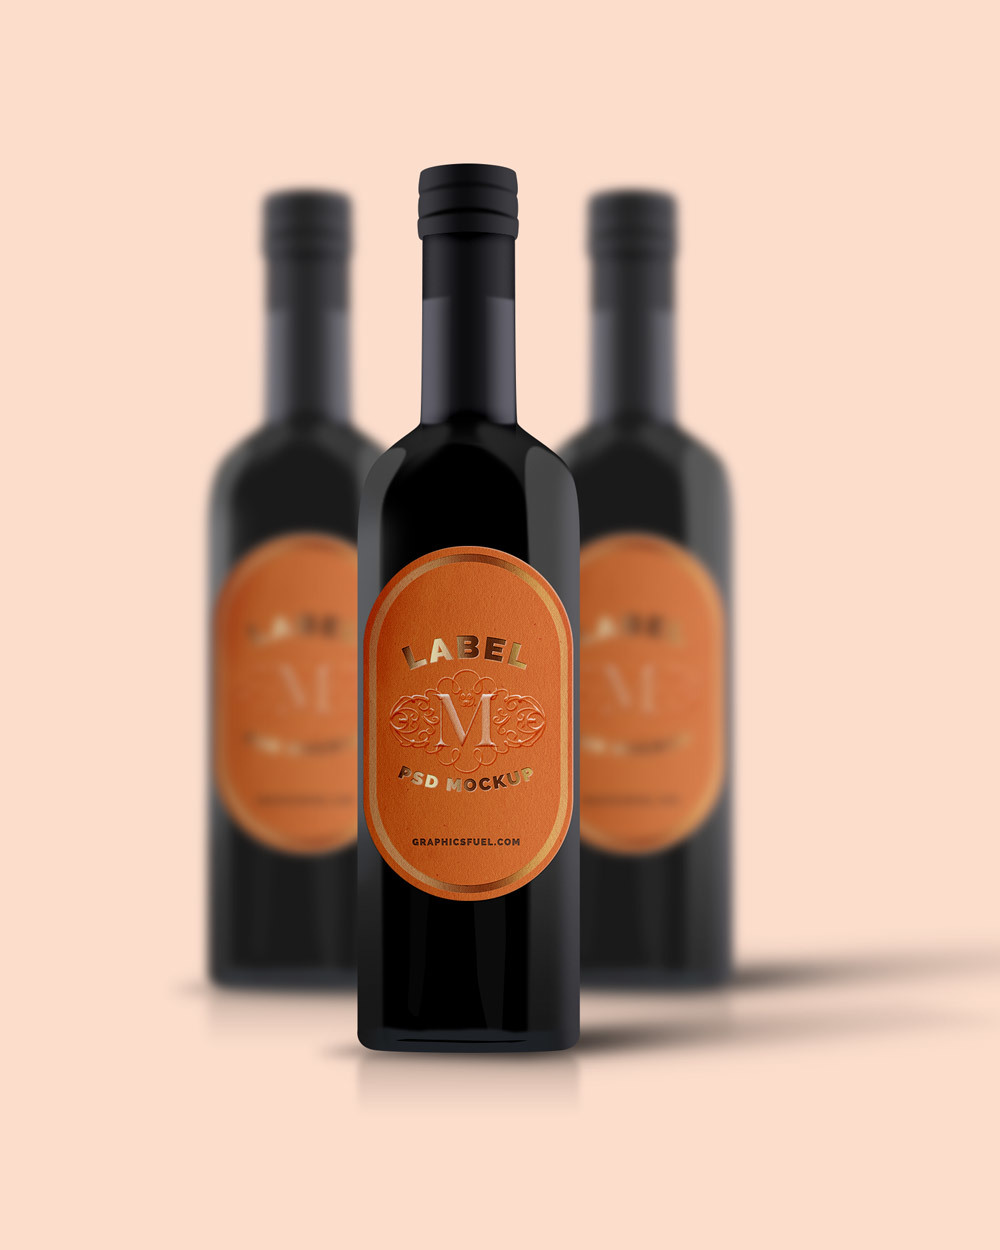 http://www.graphicsfuel.com/2015/12/wine-bottle-mockup-psd/